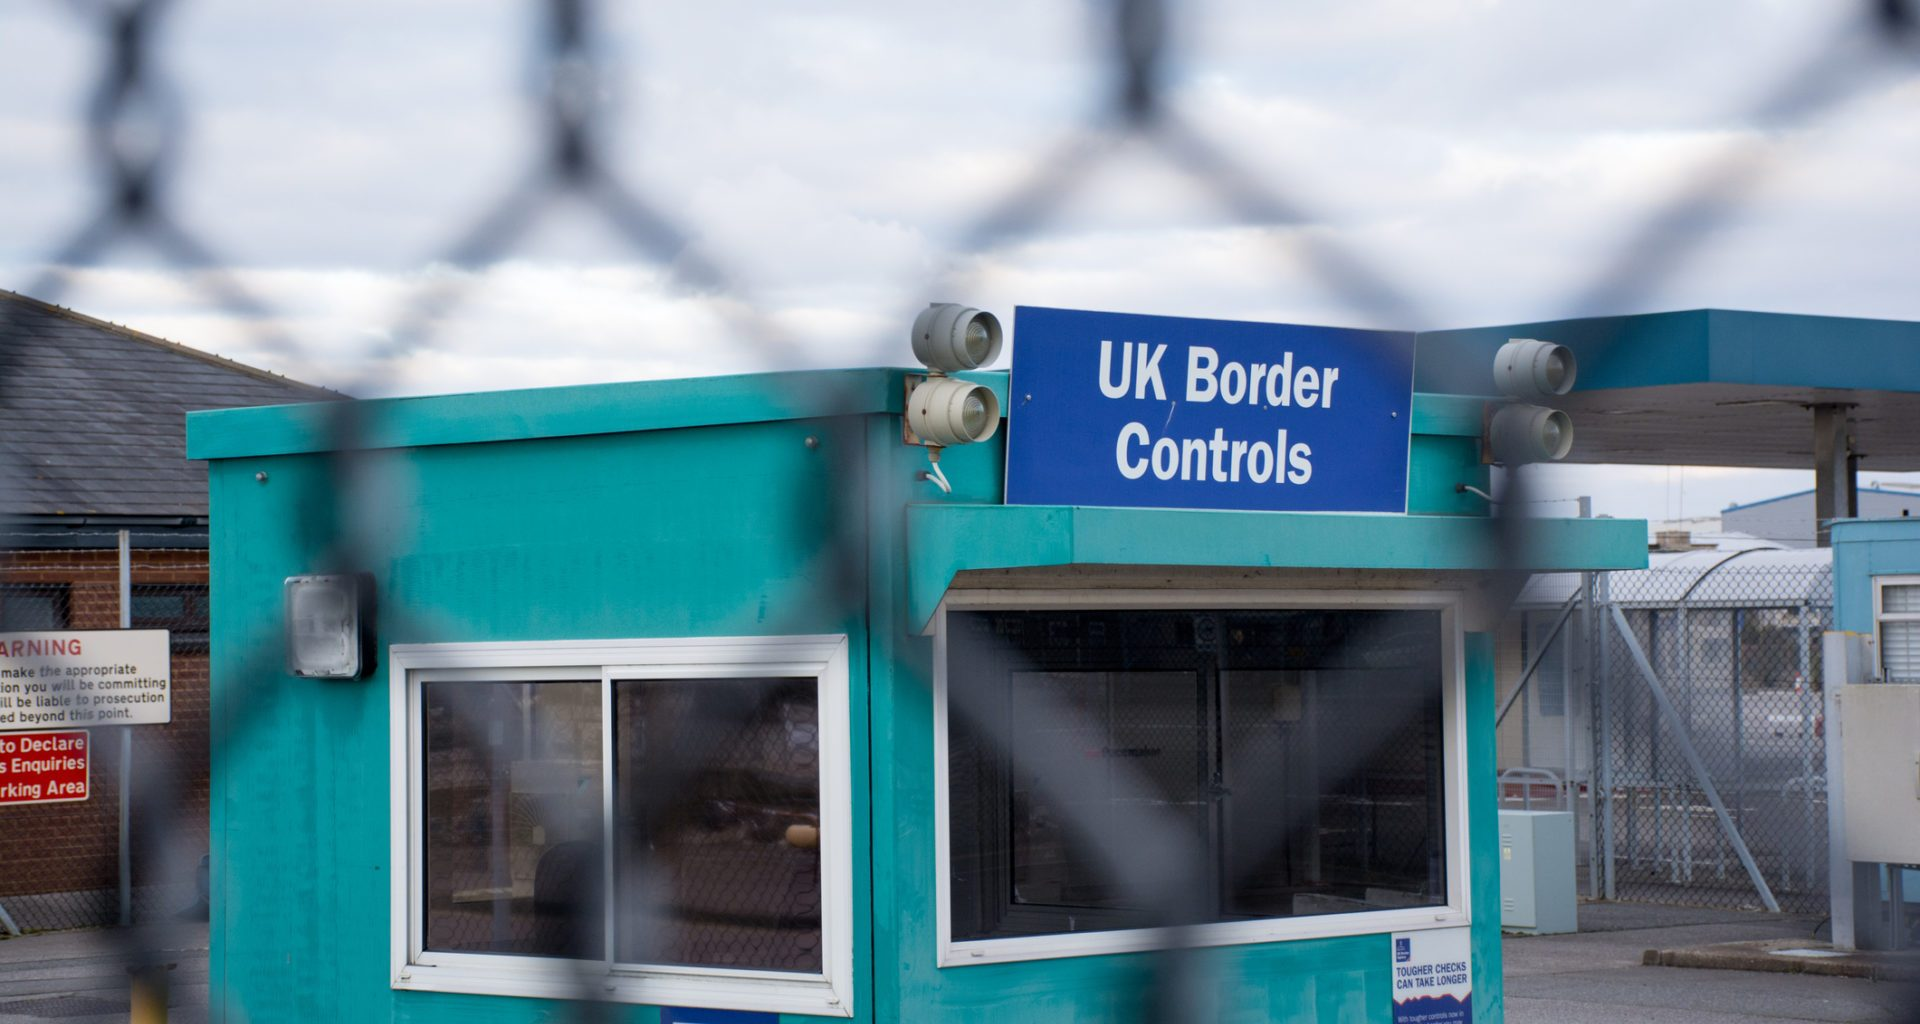 Hundreds of Afghans prevented from claiming asylum in the UK pending Home Office investigations 8